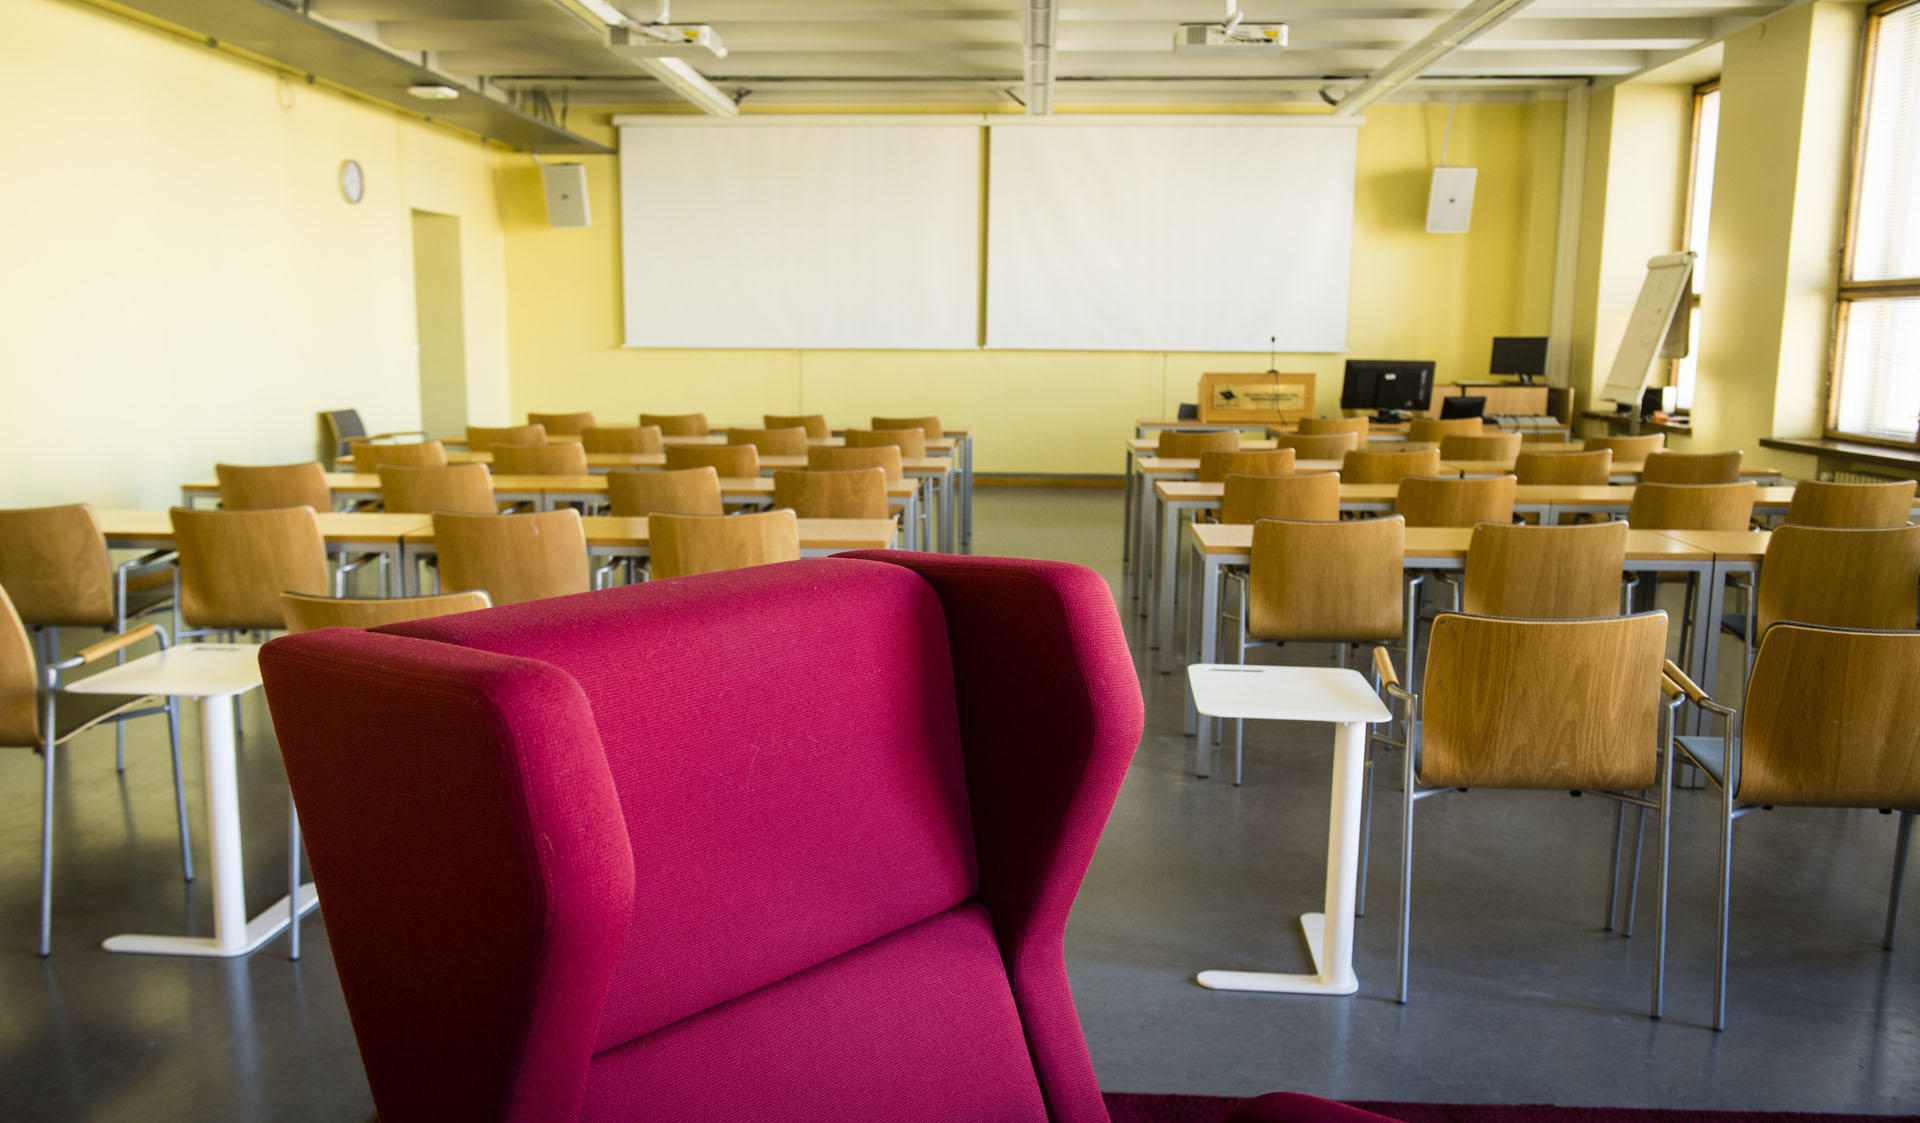 Empty seminar space at the Collegium's Common room with tables, chairs and an arm chair.